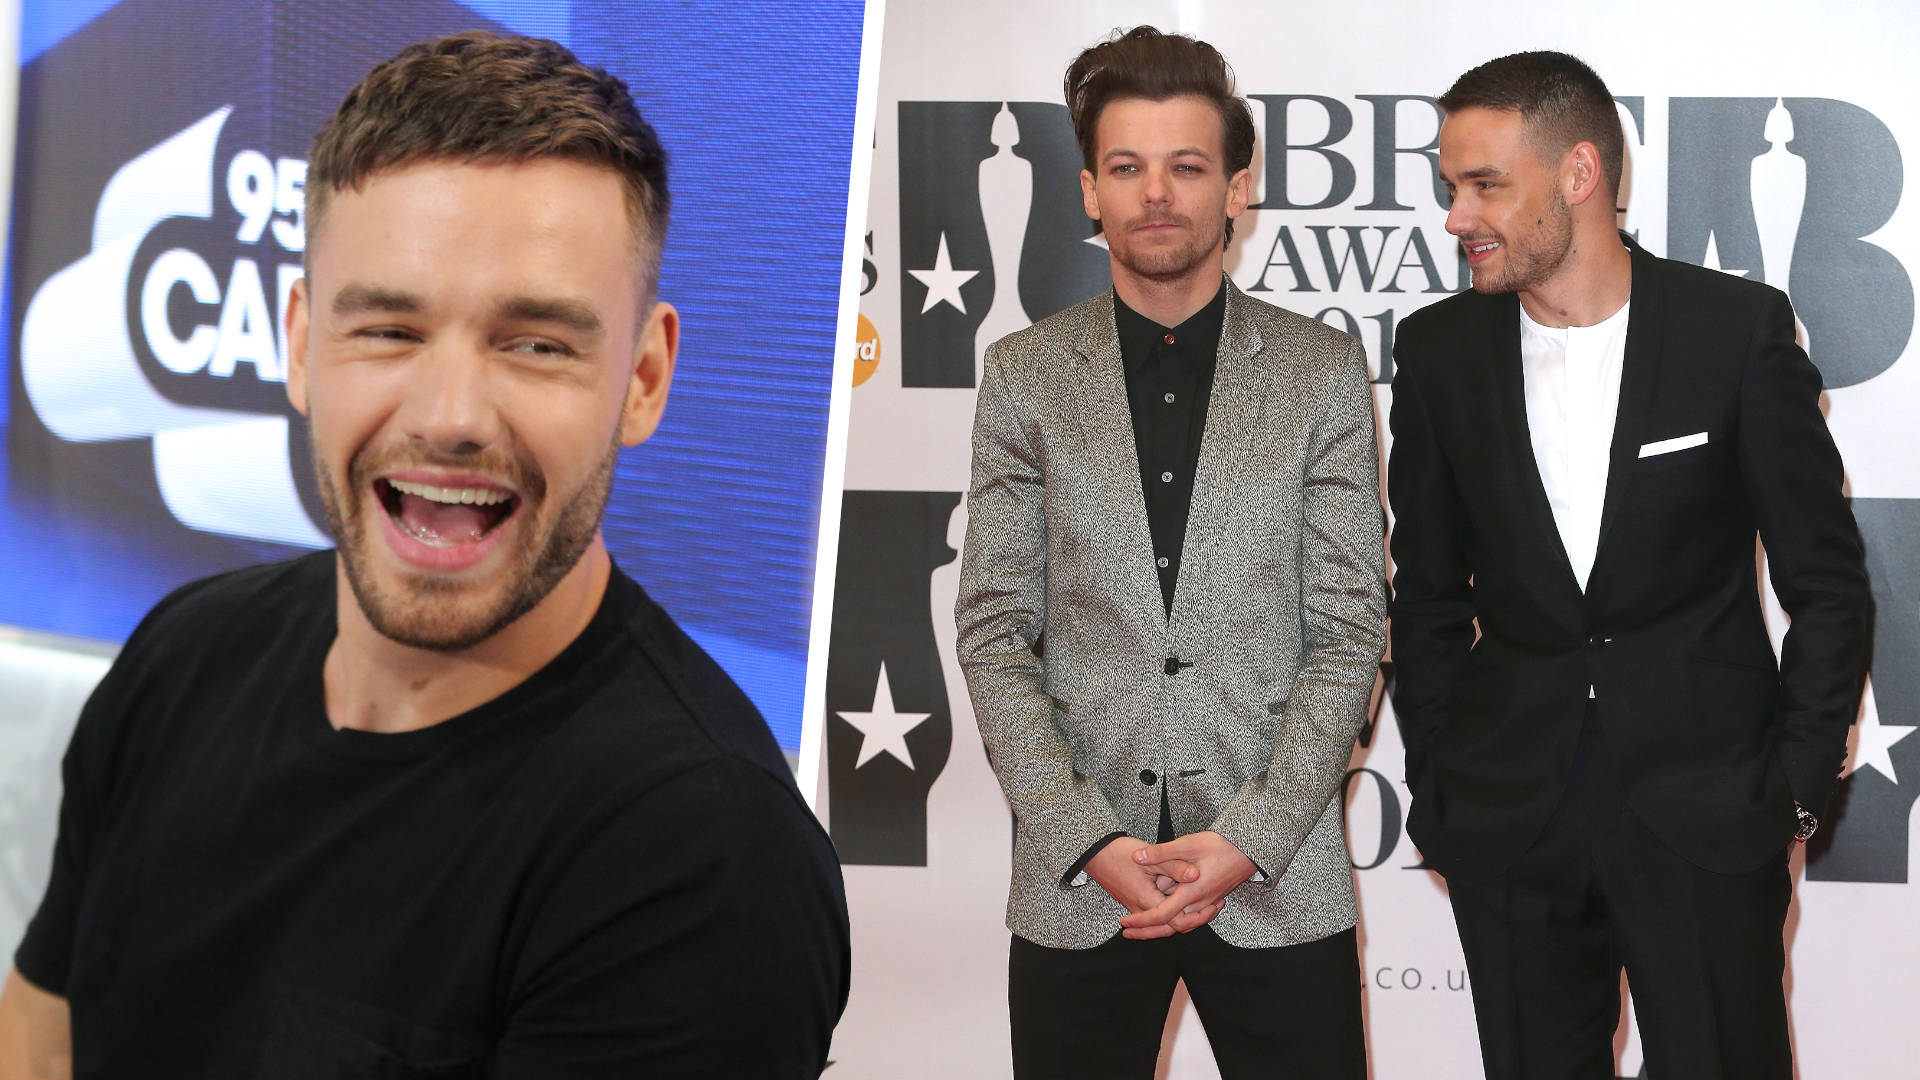 WATCH: Liam Payne Relies On Louis Tomlinson's Friendship To Help Him Through Hard Times